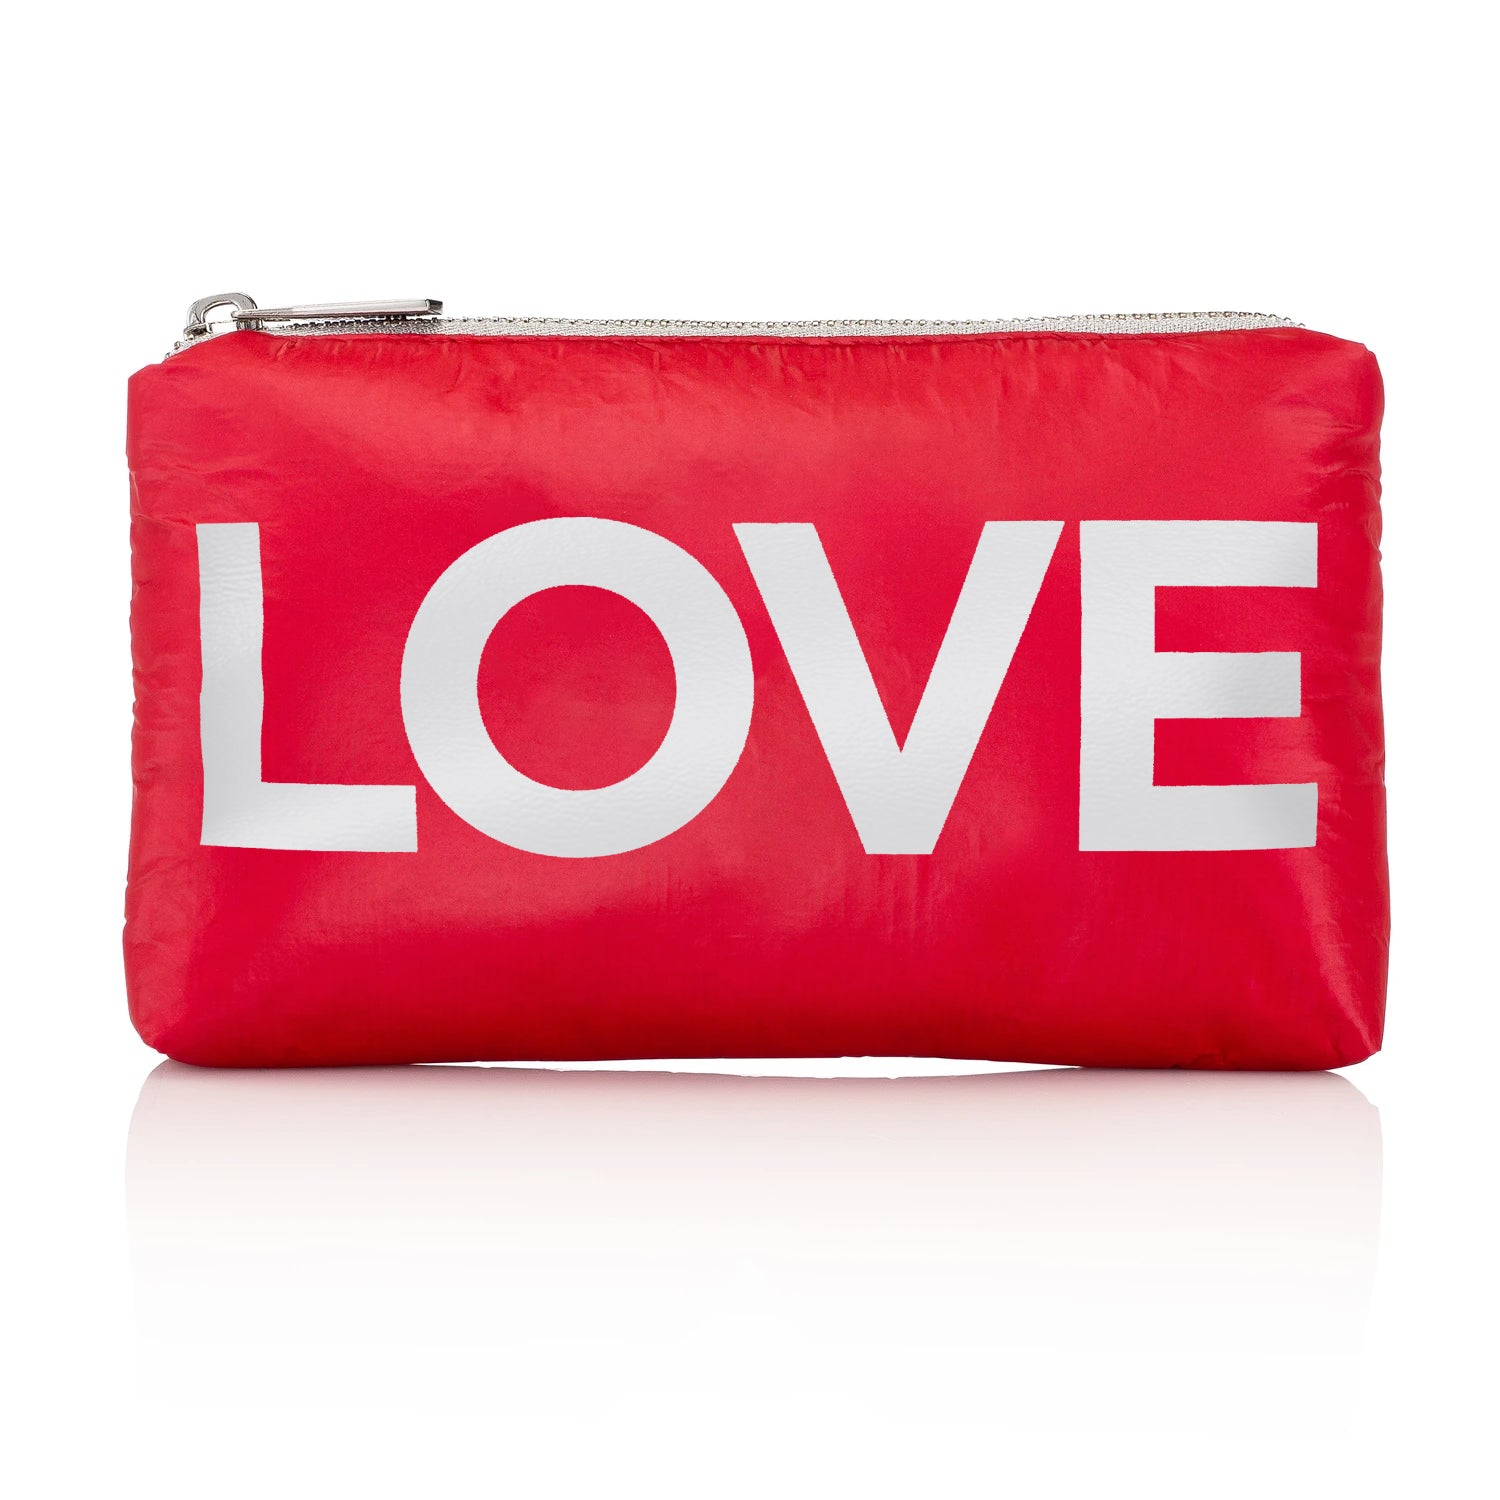 "Holiday Makeup Pouch - Chic Clutch - Mini Padded Pack - Chili Pepper Red with Metallic Silver ""LOVE"""